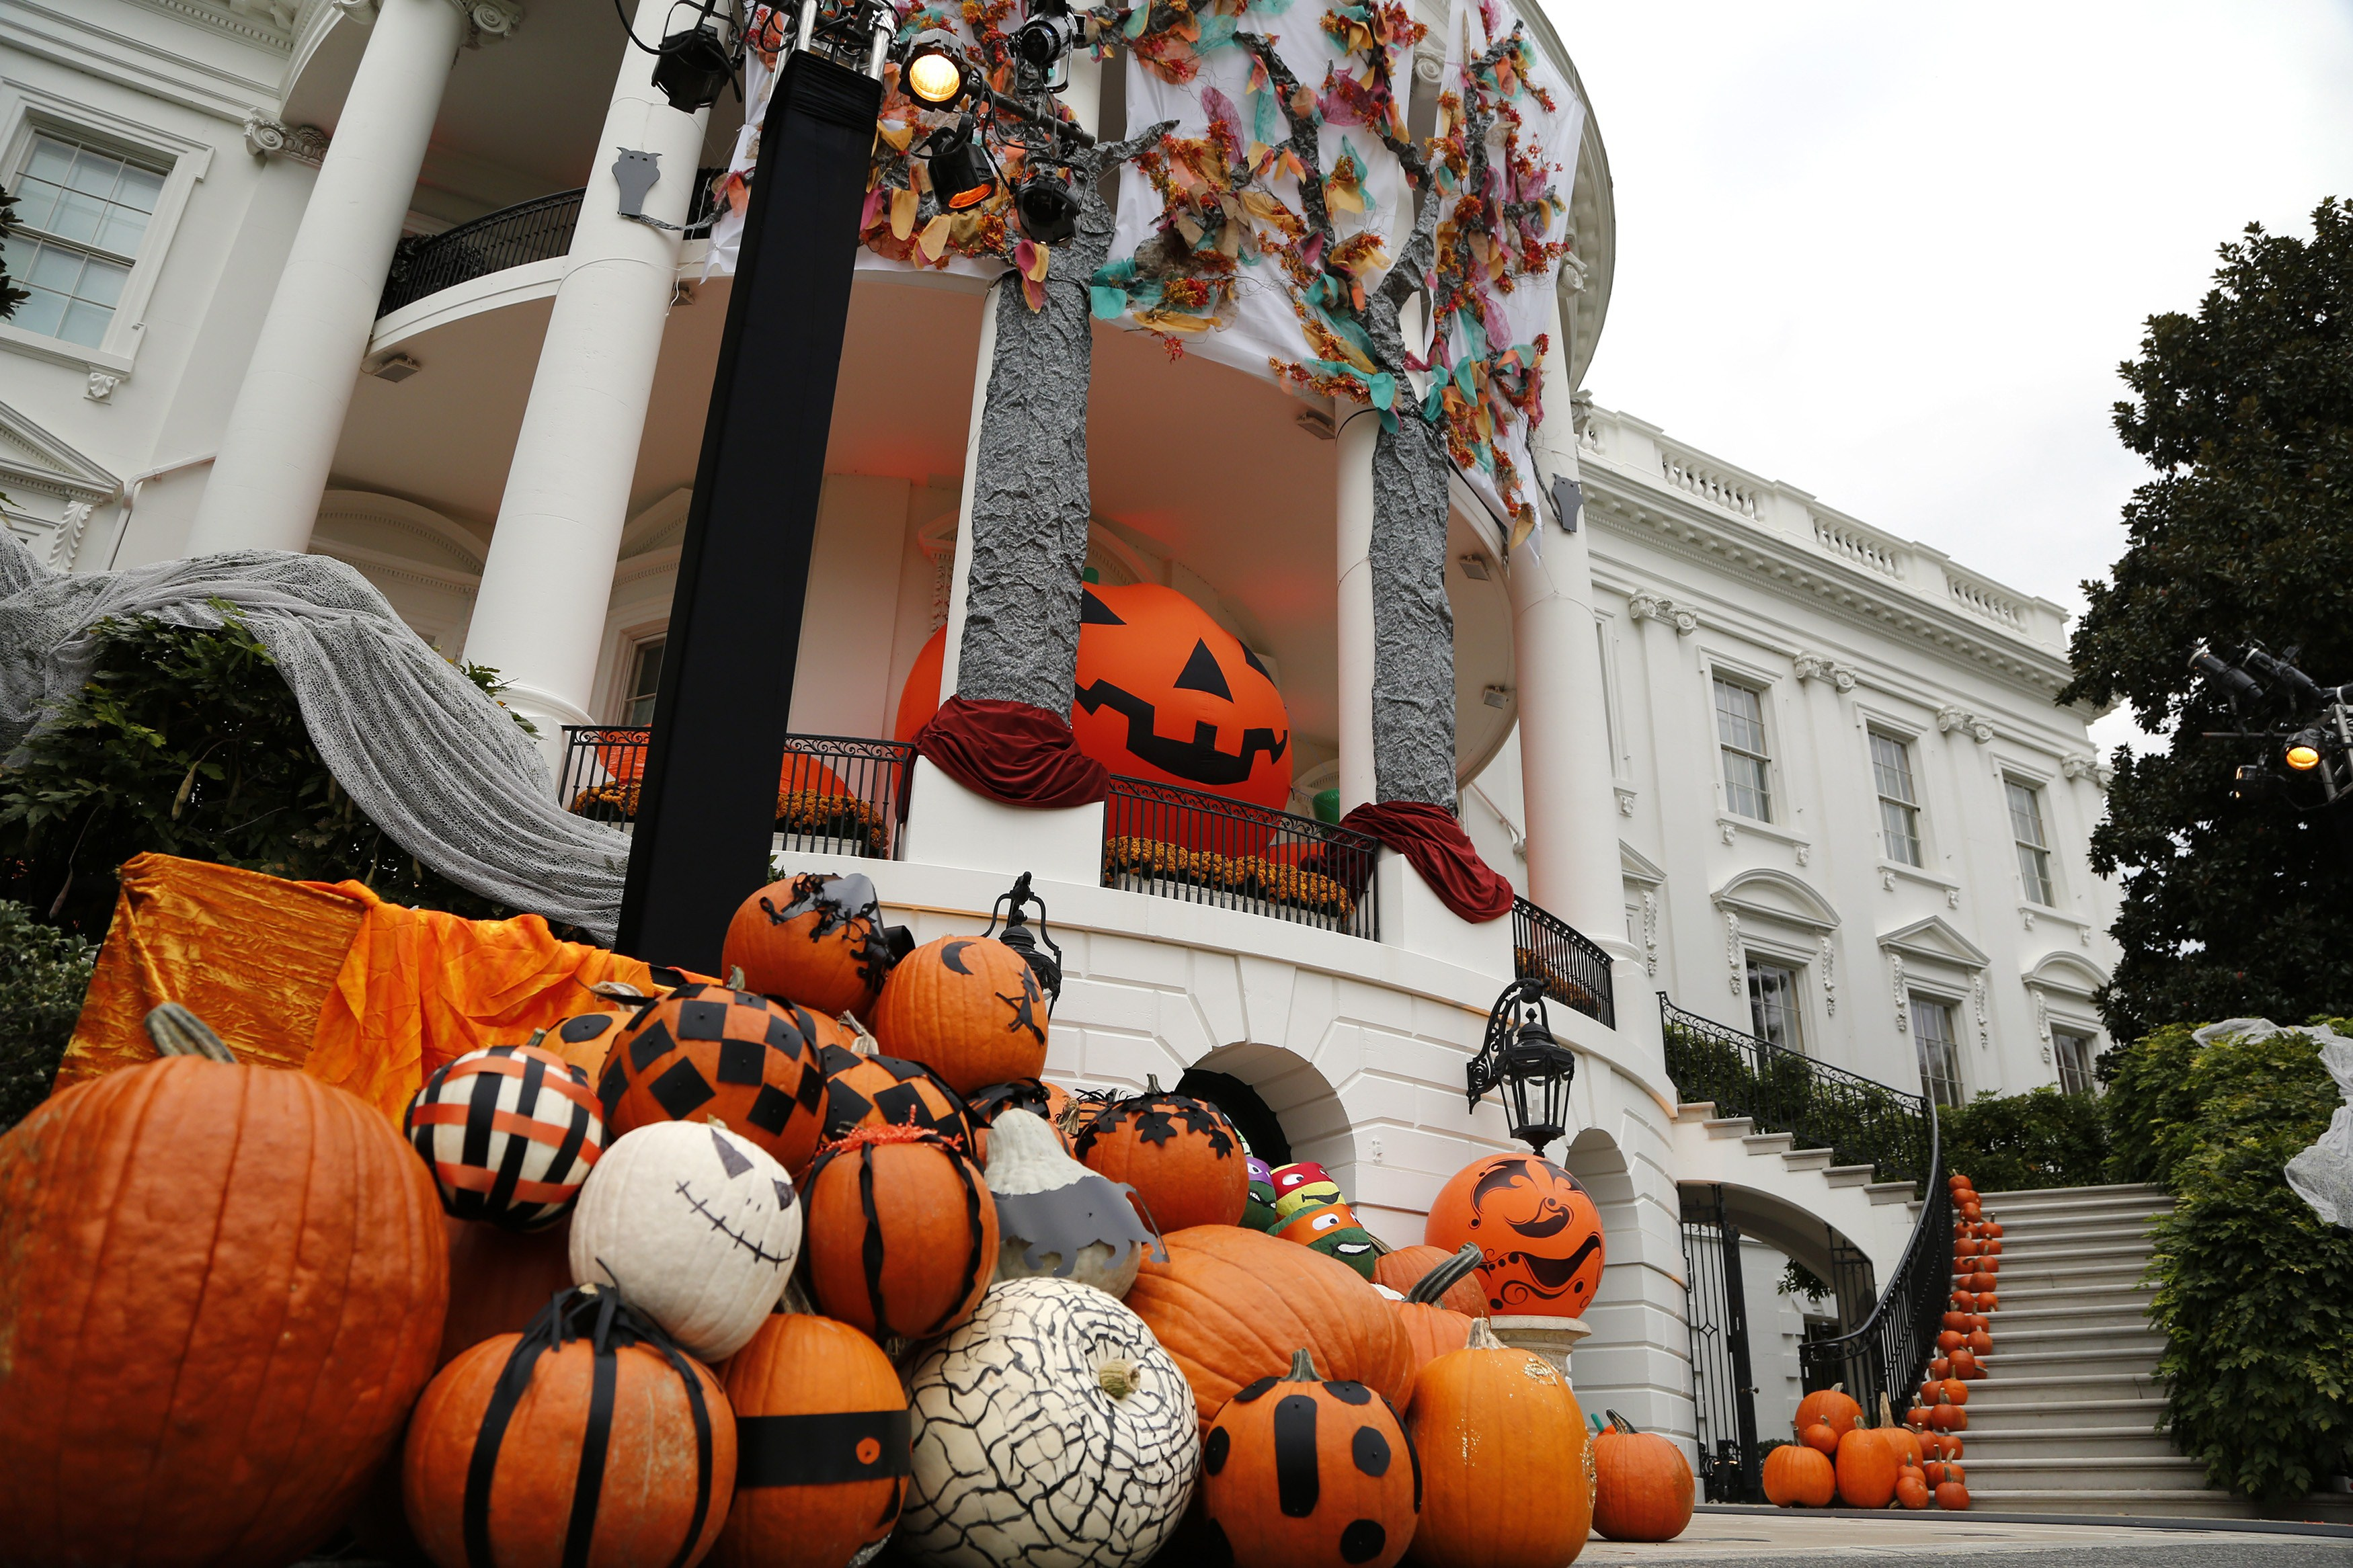 halloween diy decorations 2015: cheap, do-it-yourself ideas